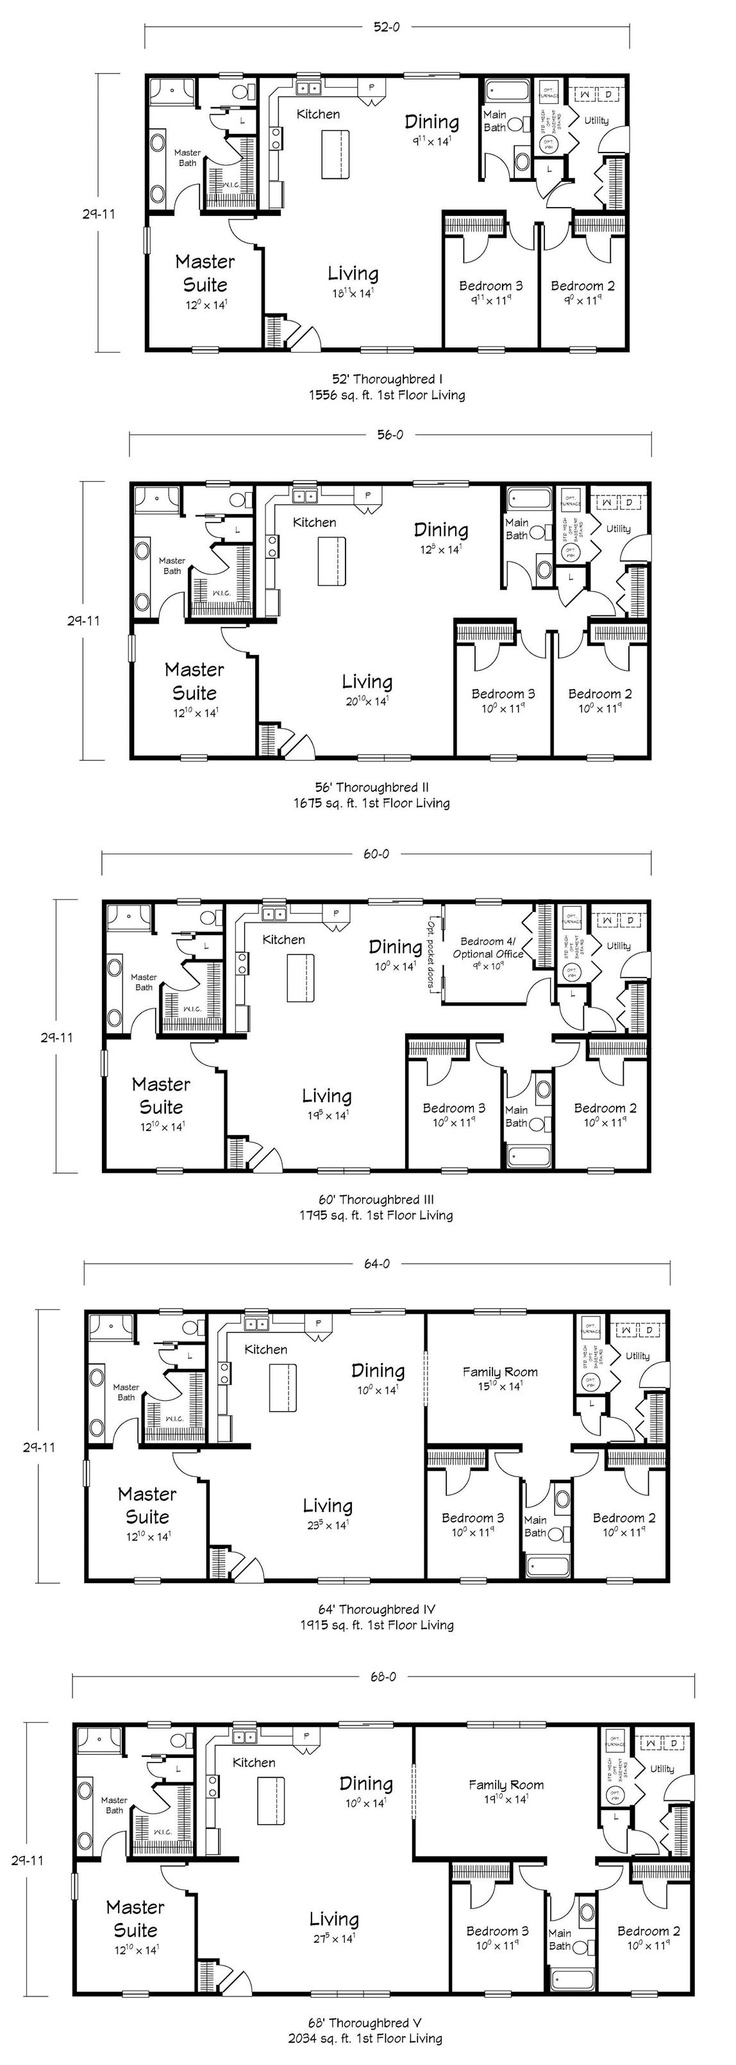 79 best floor plans images on pinterest architecture floor